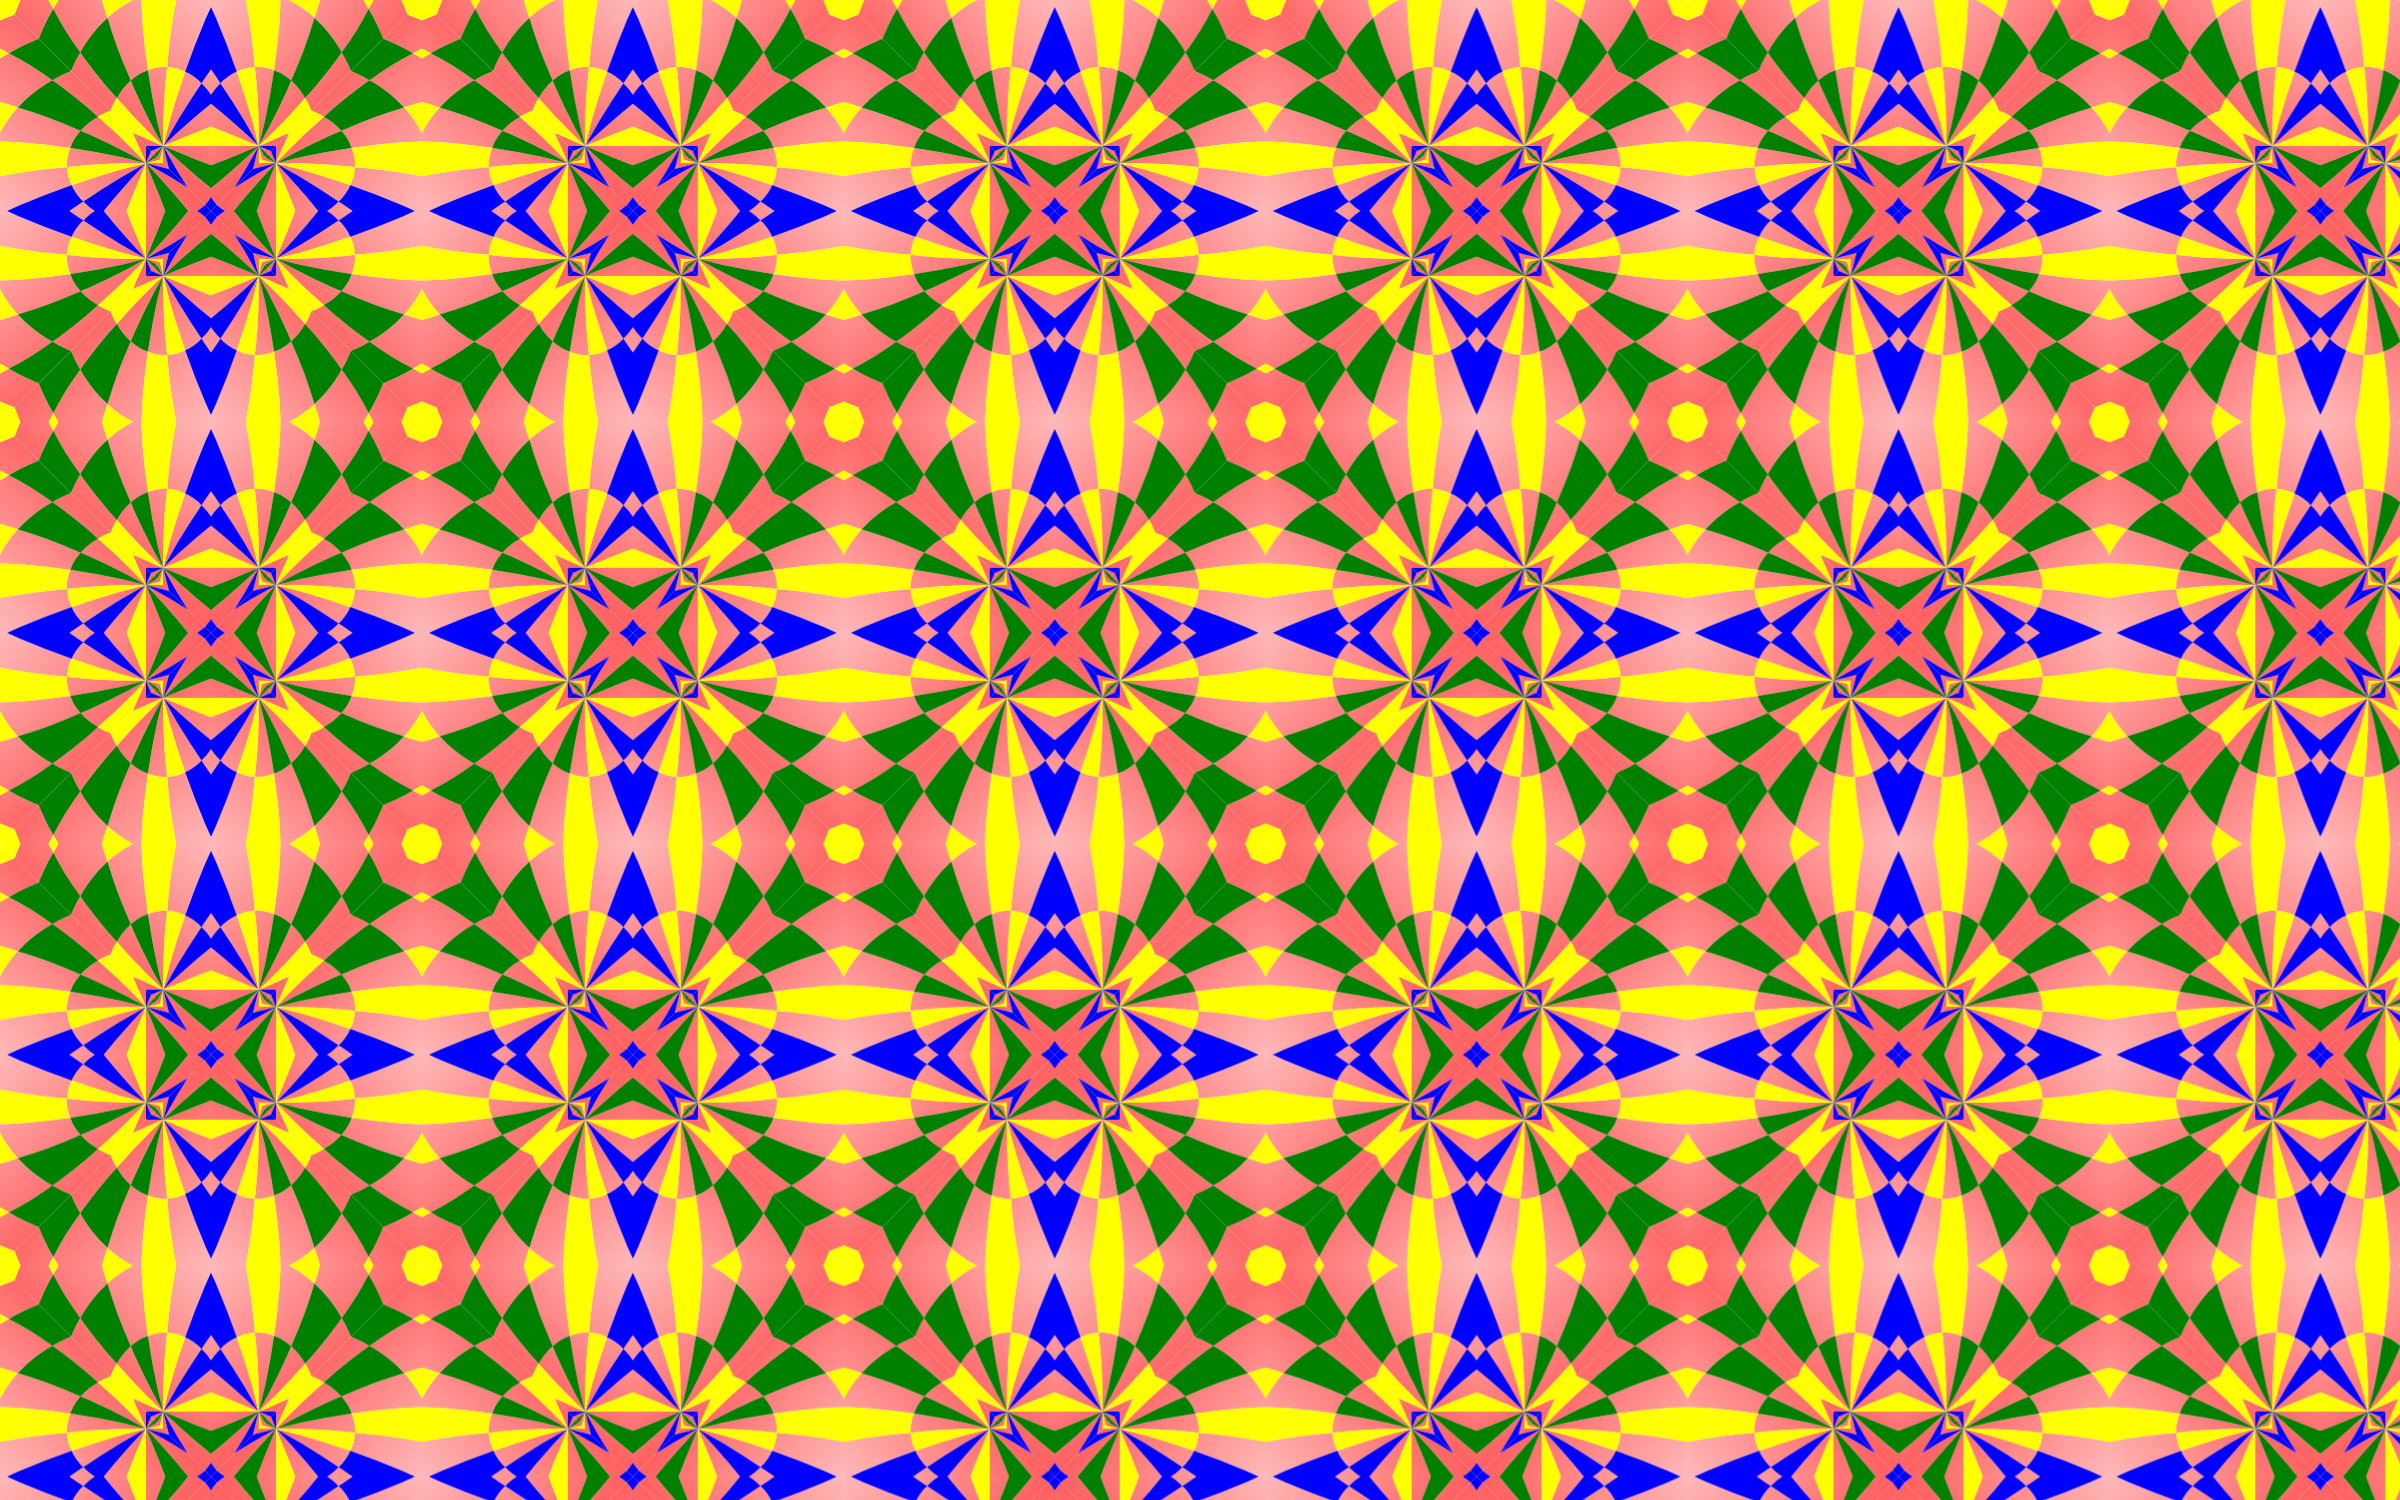 Seamless Pattern 75 by GDJ